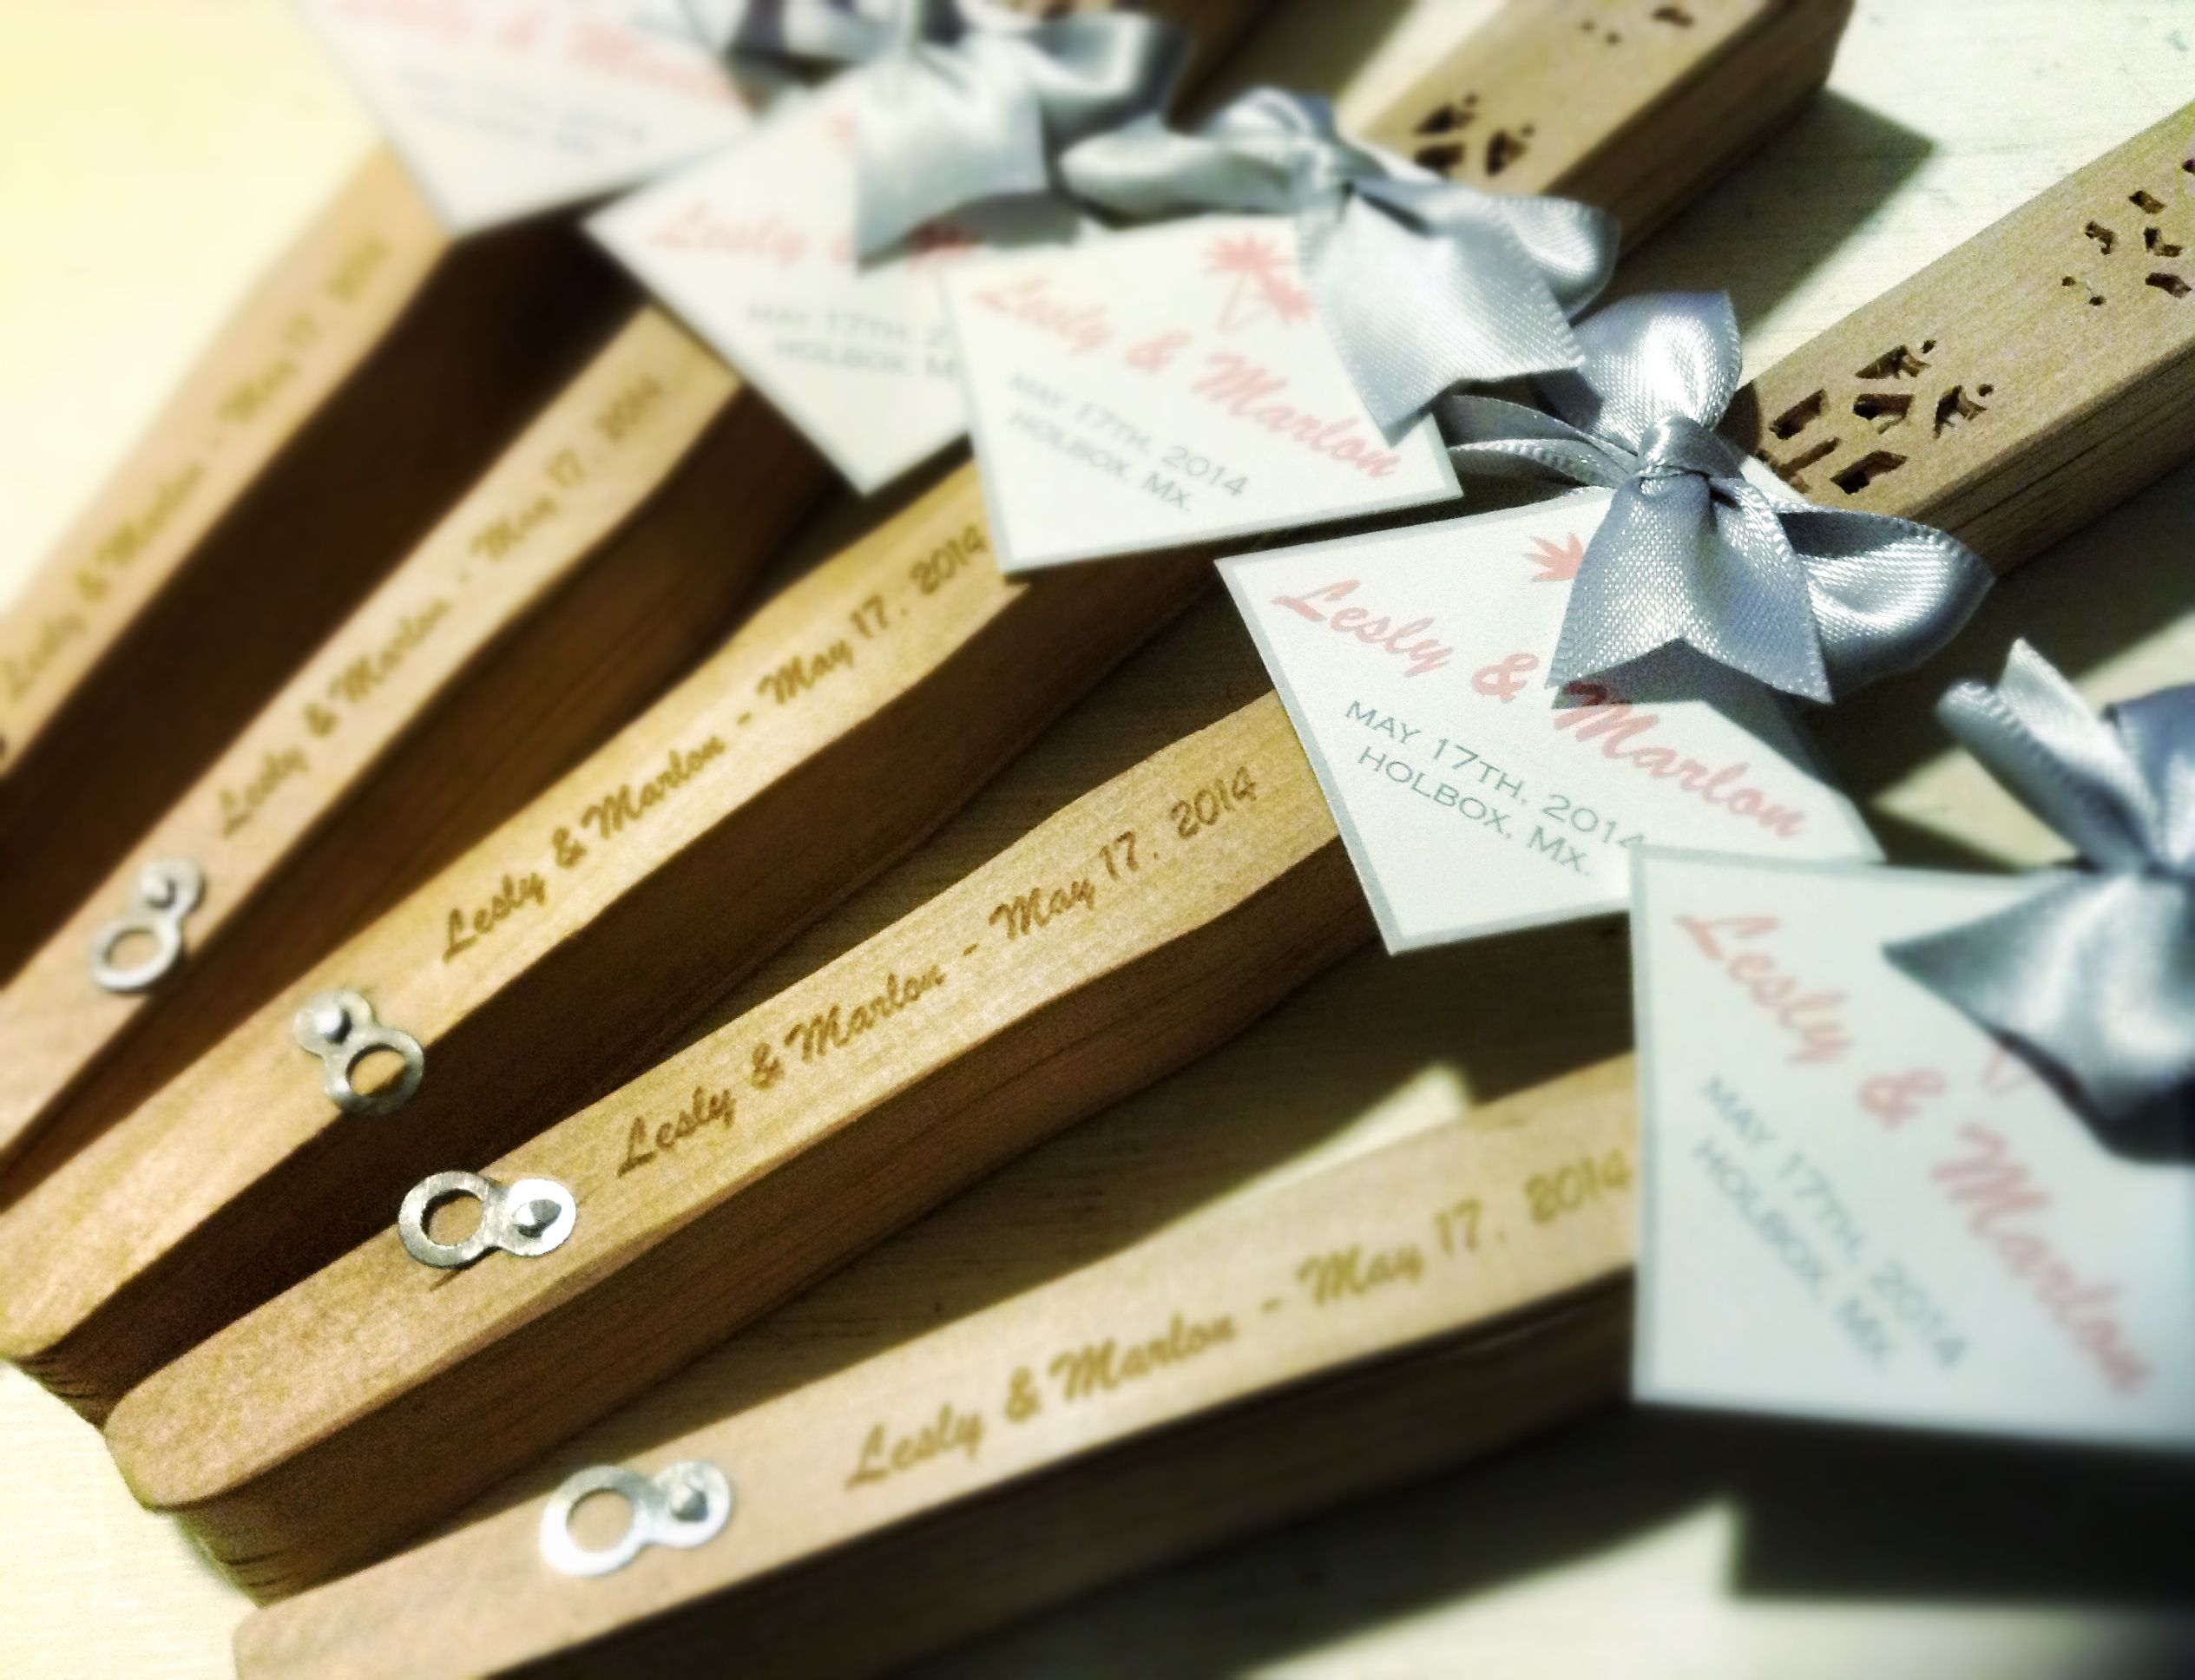 Beautiful engraved Wood fan favors for wedding in Holbox México